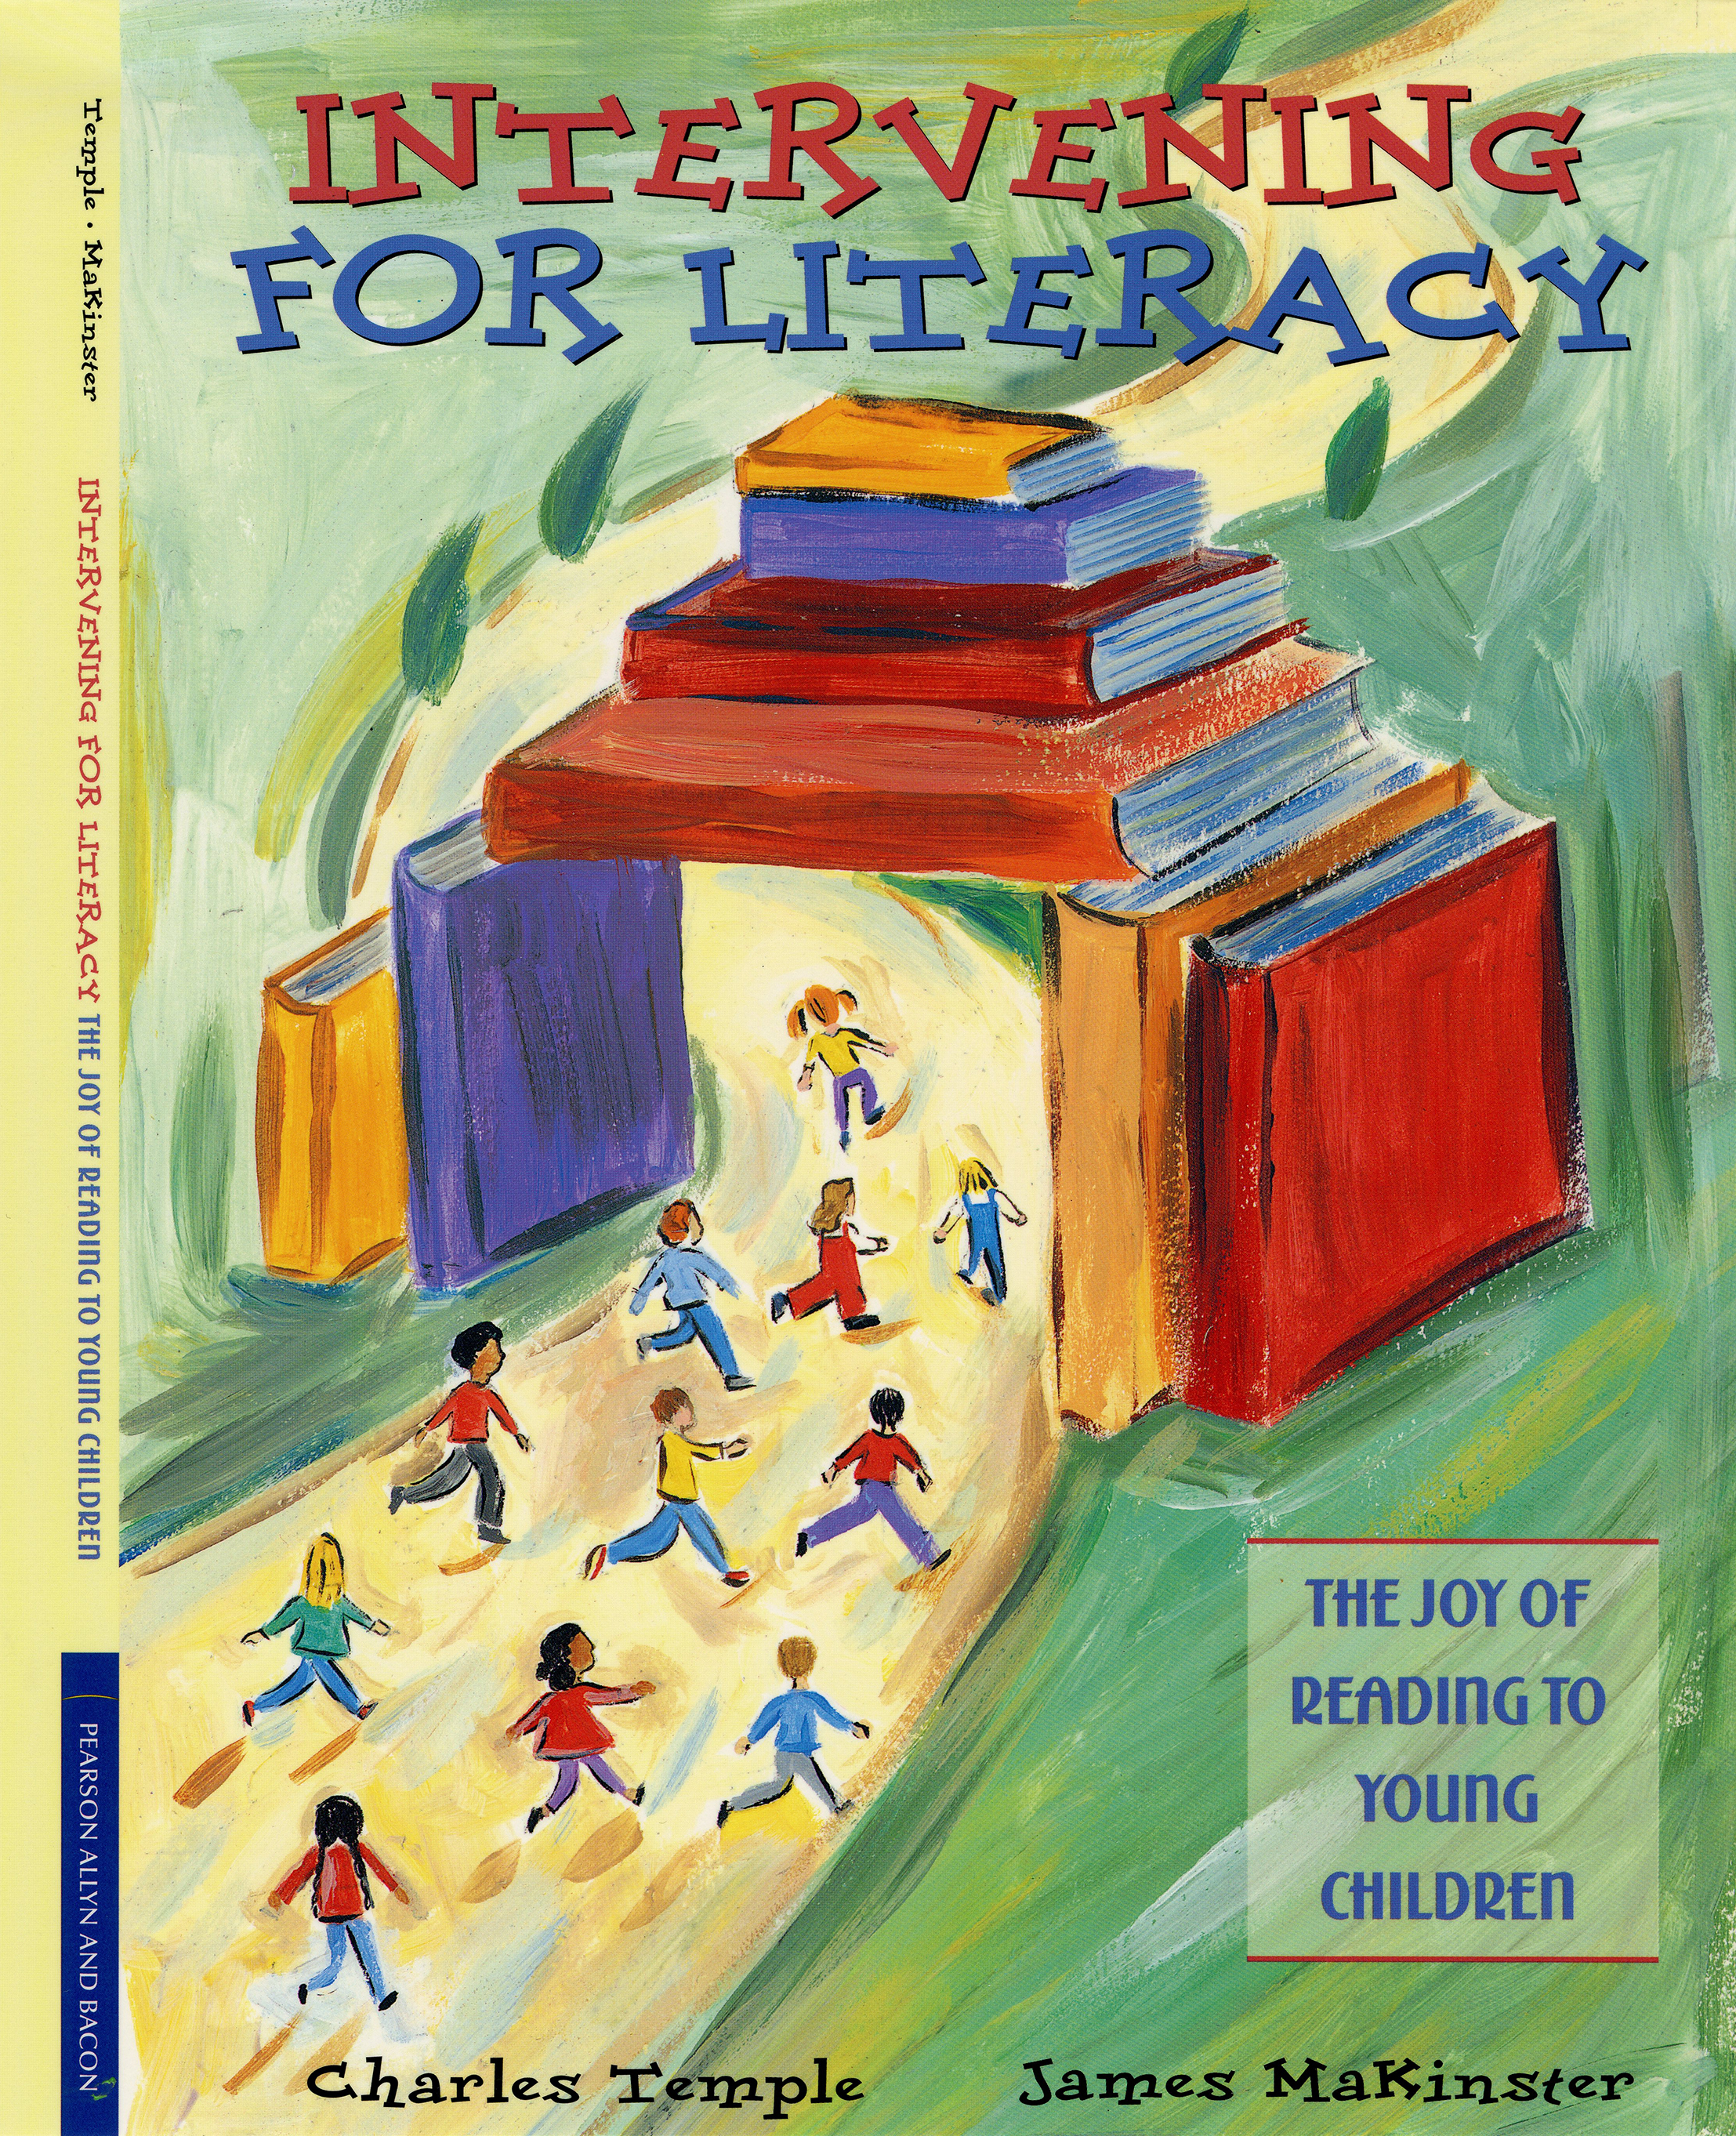 literacy book cover.jpg